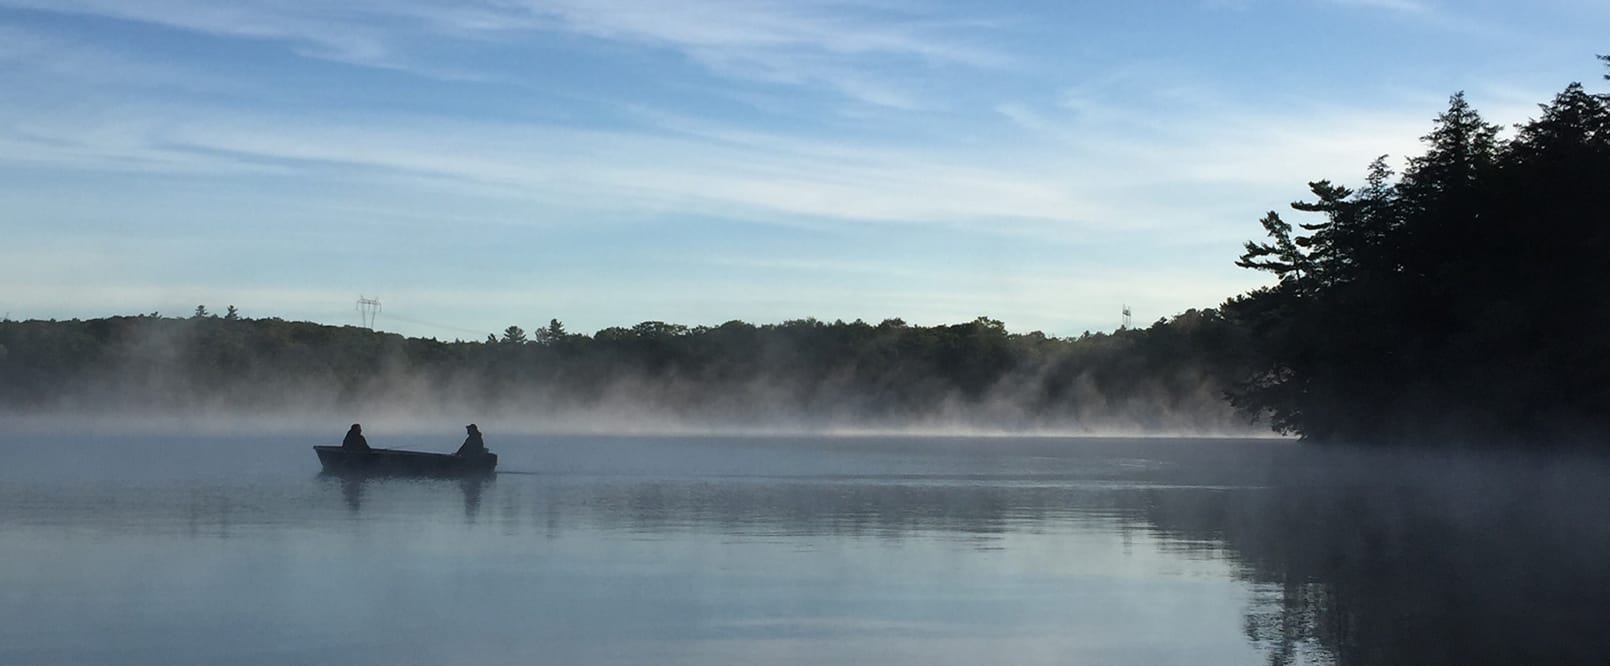 Boat with mist on lake